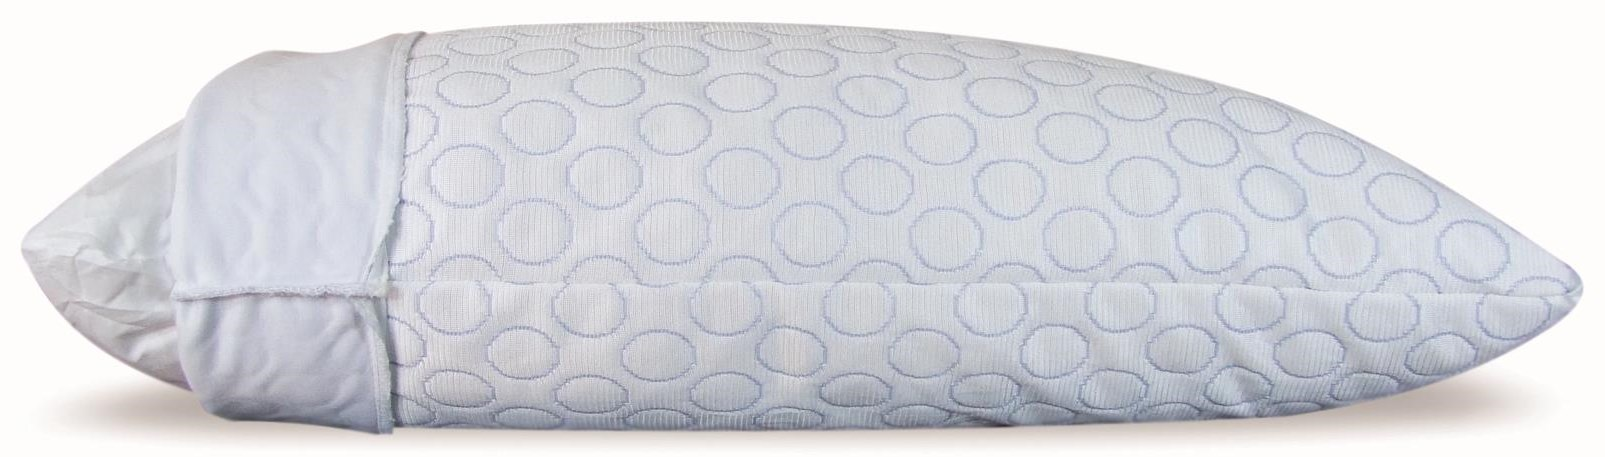 King Luxury Pillow Protector